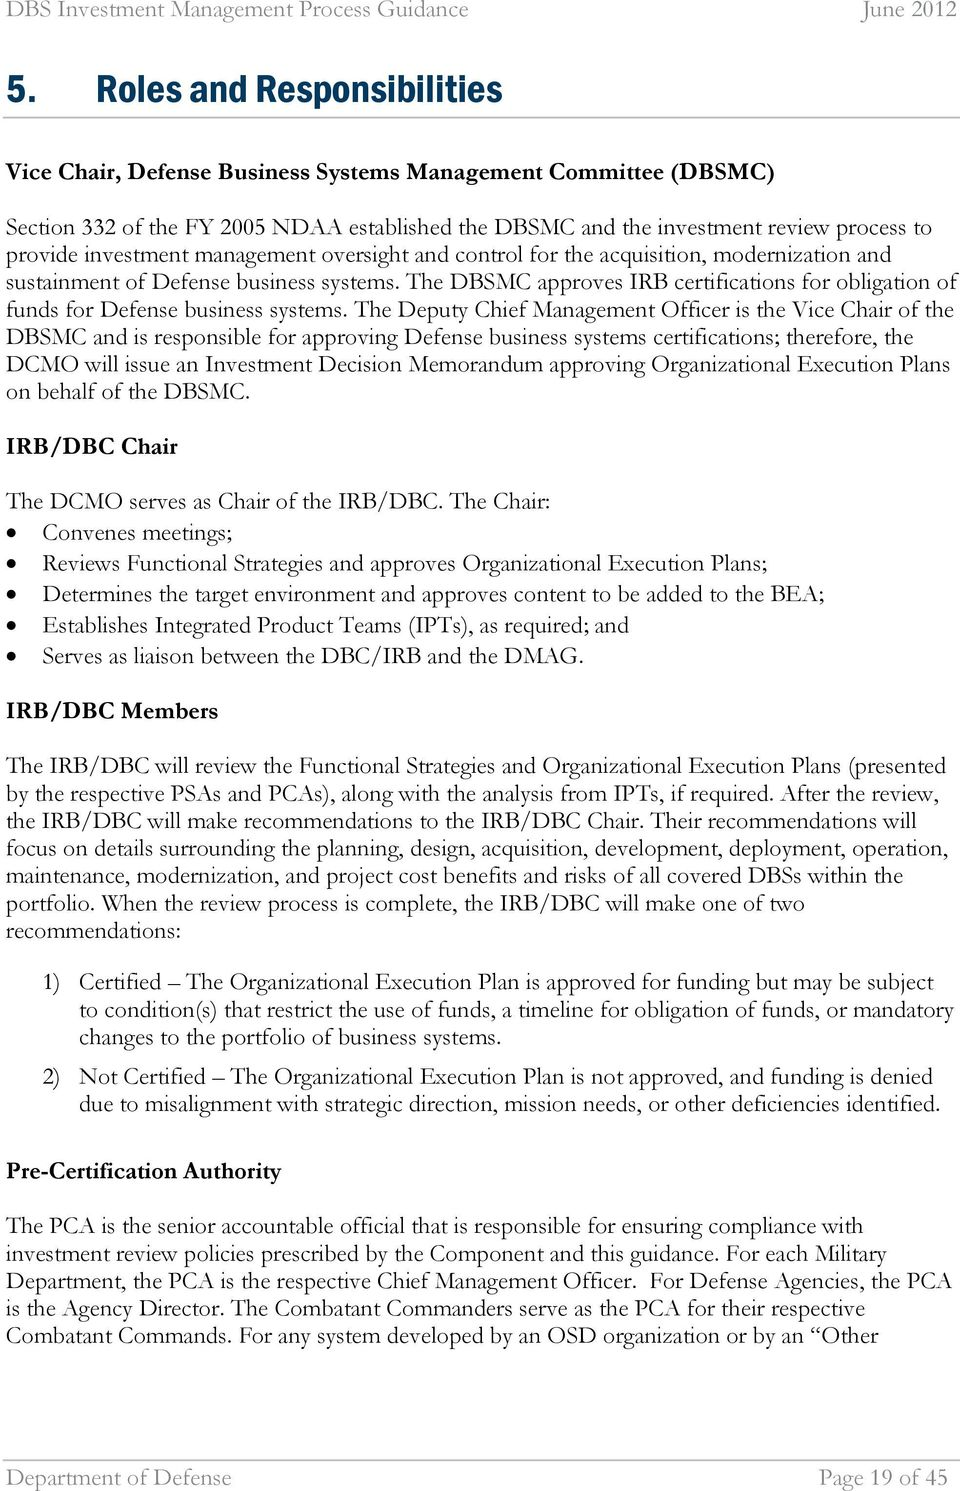 The DBSMC approves IRB certifications for obligation of funds for Defense business systems.